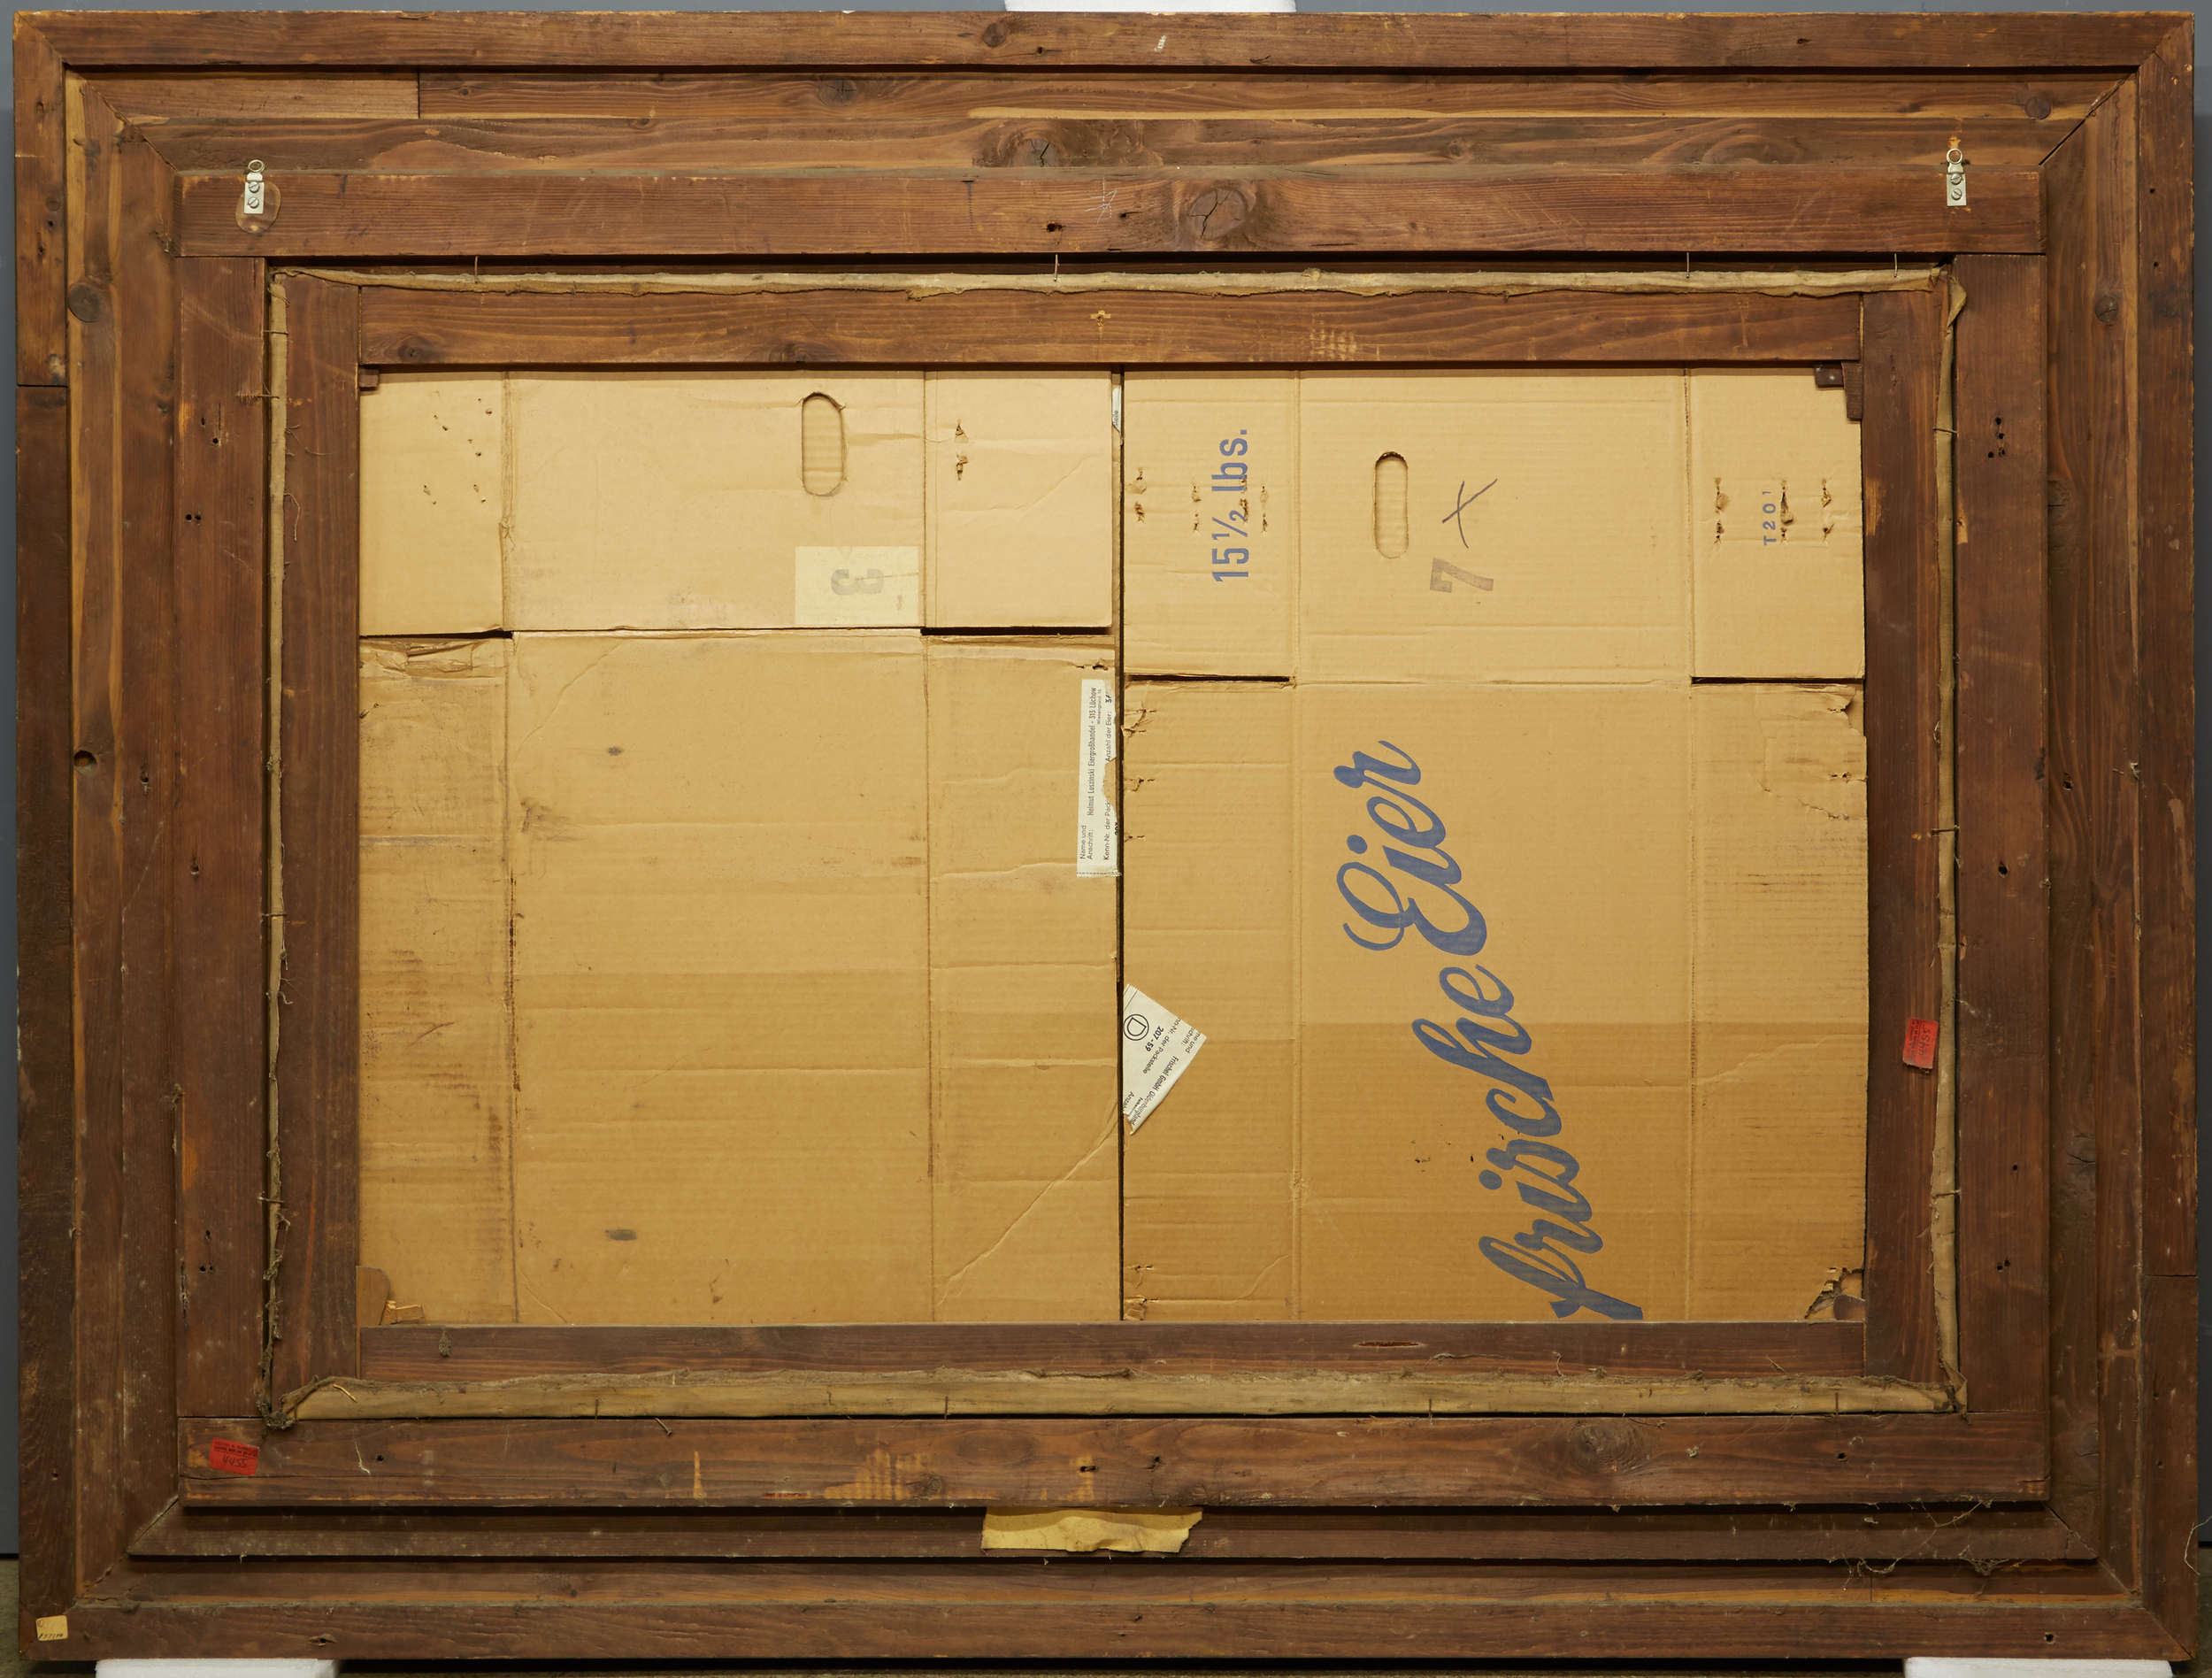 Cardboard is not recommended as a backing material. We suggest replacing cardboard immediately with archival materials.